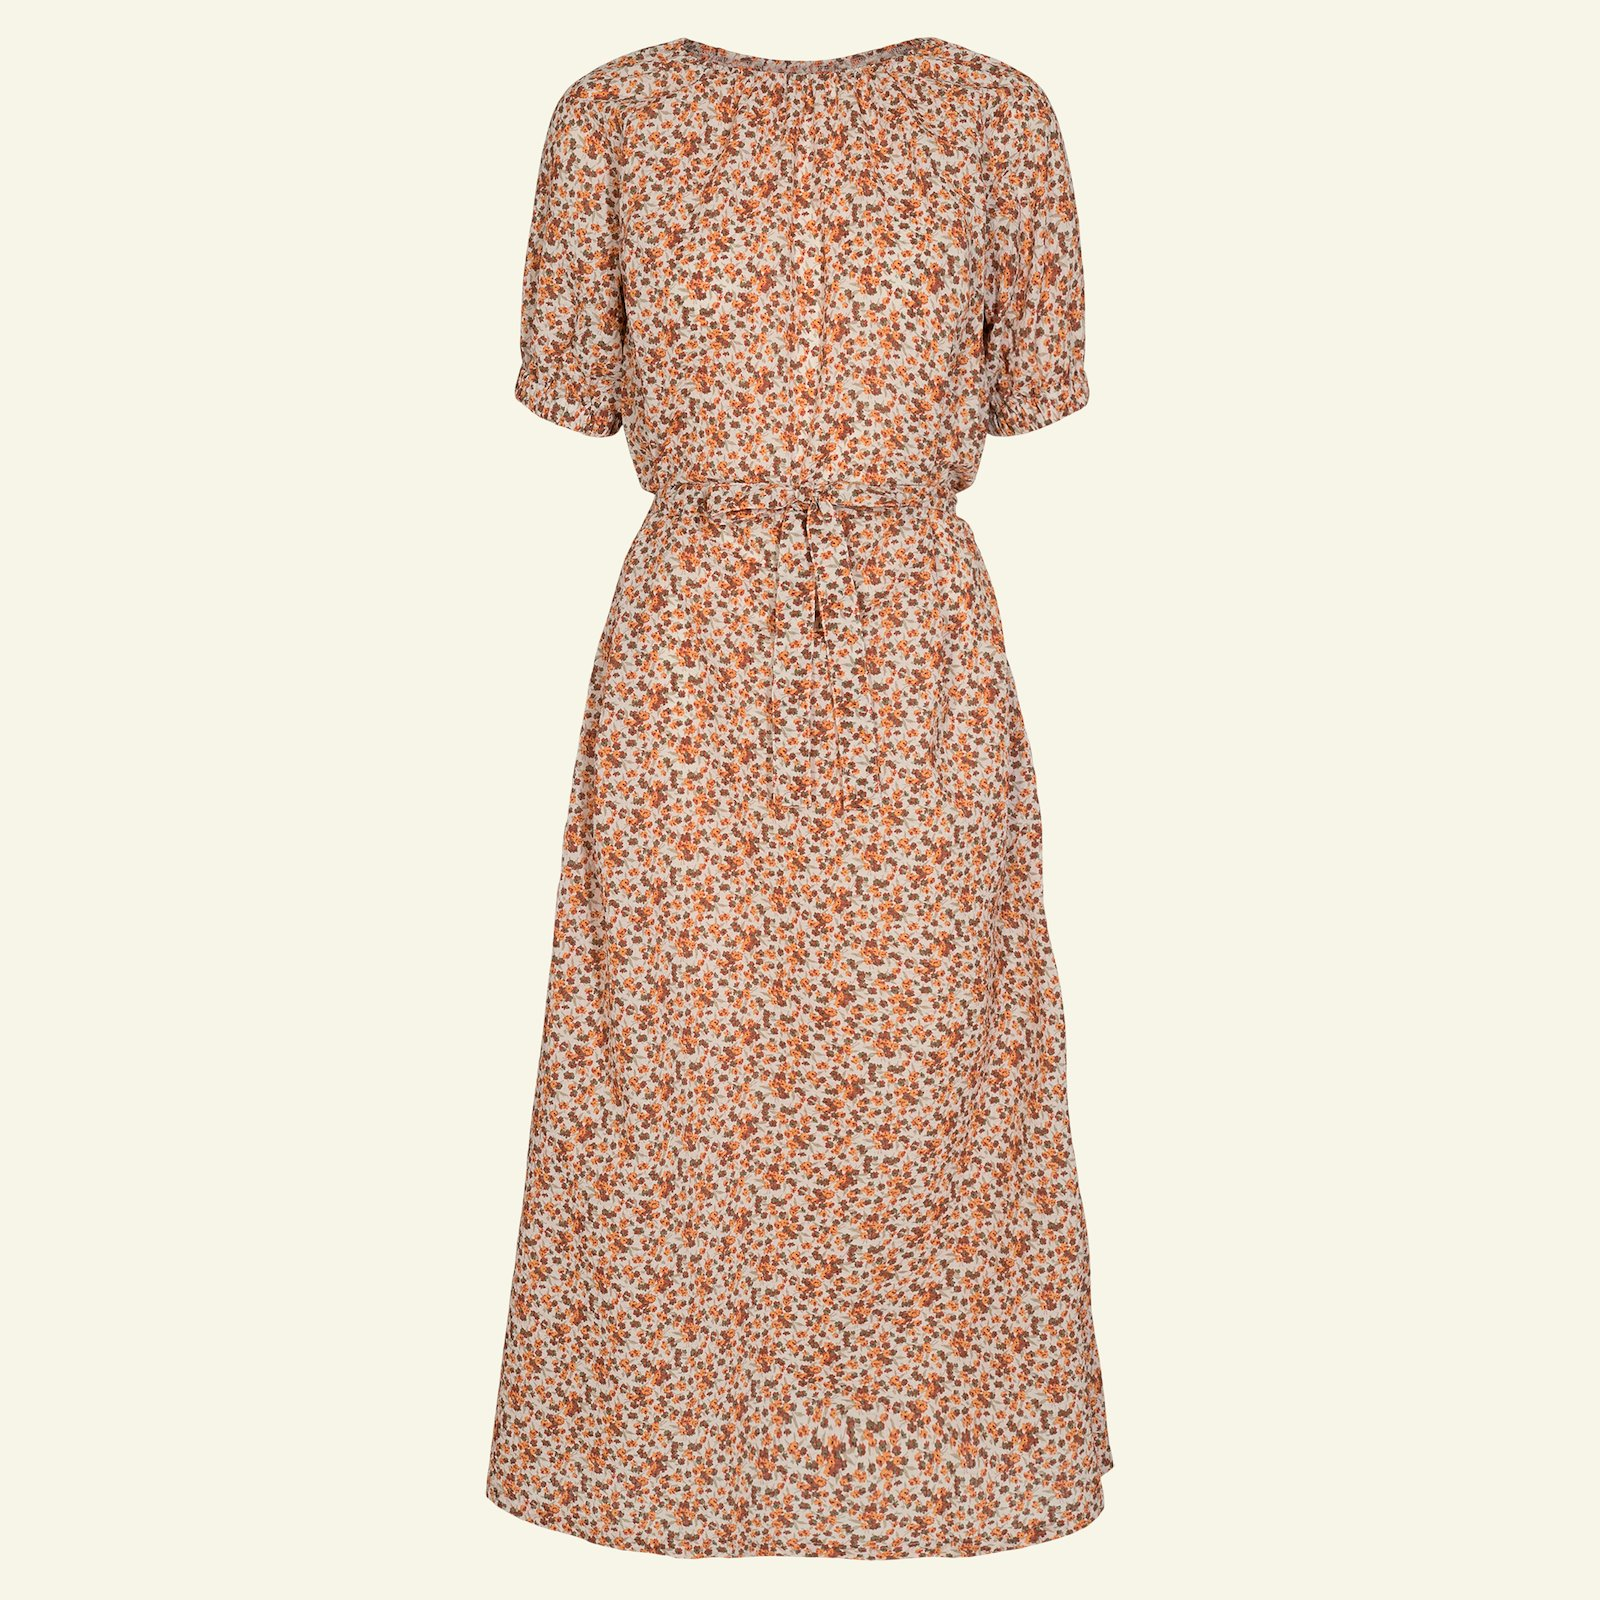 Dress with belt and blouse p23167_580052_sskit